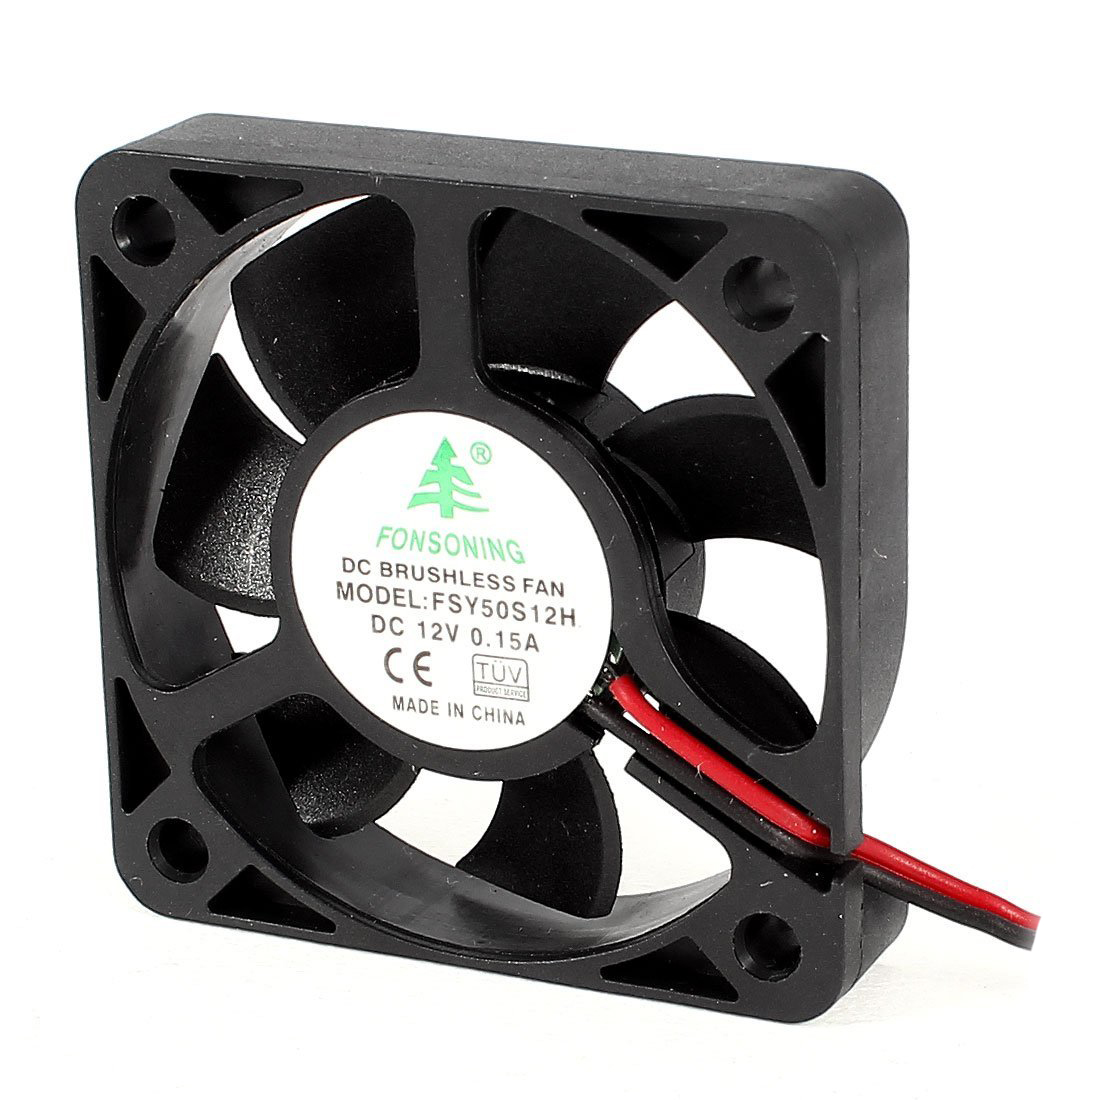 FONSONING FSY50S12H 50mm x 10mm 2Pin 12V DC Brushless PC Case Cooling Fan gdstime 10 pcs dc 12v 14025 pc case cooling fan 140mm x 25mm 14cm 2 wire 2pin connector computer 140x140x25mm